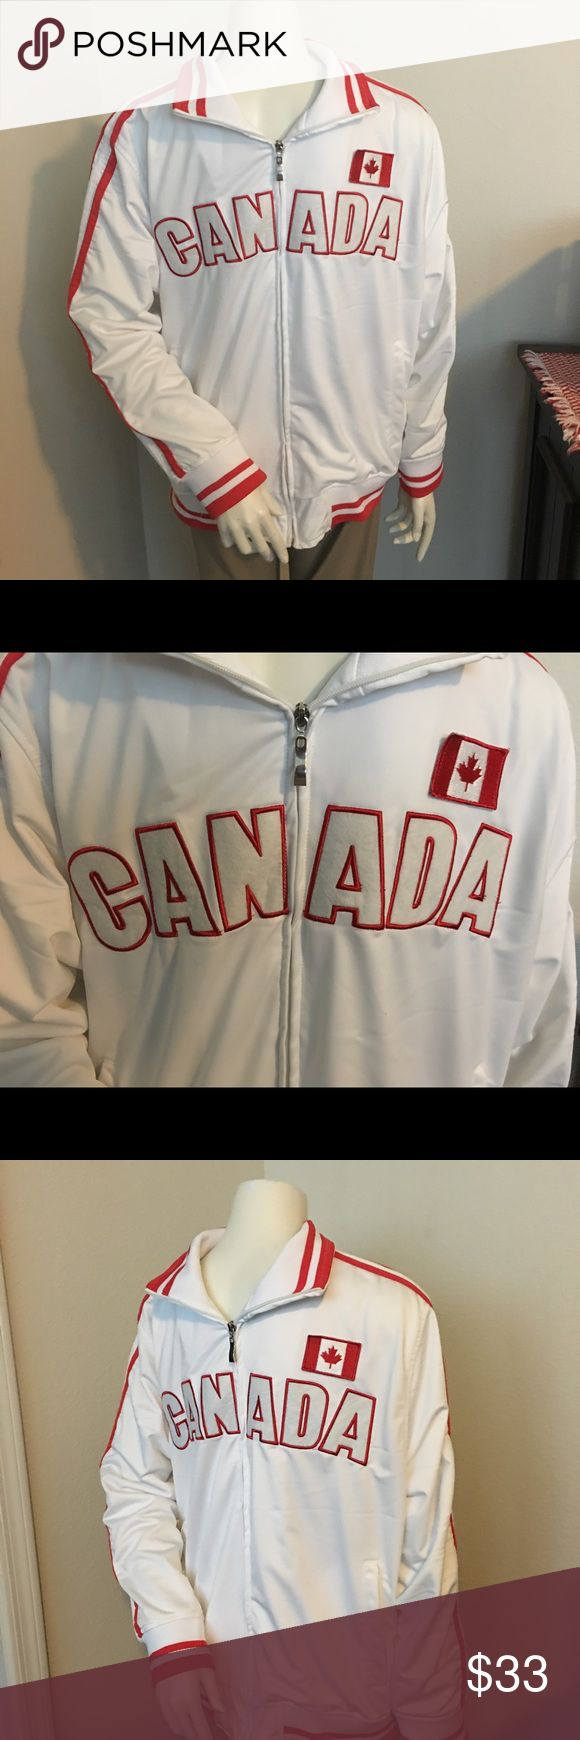 "Men's Canada long sleeve jacket sz: L for sale is a men's, white and red, longsleeve, Canada jacket.  Jacket looks like a jacket that is worn during the Olympic games.   White jacket trimmed in red, Canada embroidered across the chest with a Canadian flag patch on the upper left side of the chest.   From under one arm to under the other measures appx 23"" from the top of the shoulder to the bottom of the jacket measures appx 26""   Ghast brand  Sz: L   If you have any questions or would like…"